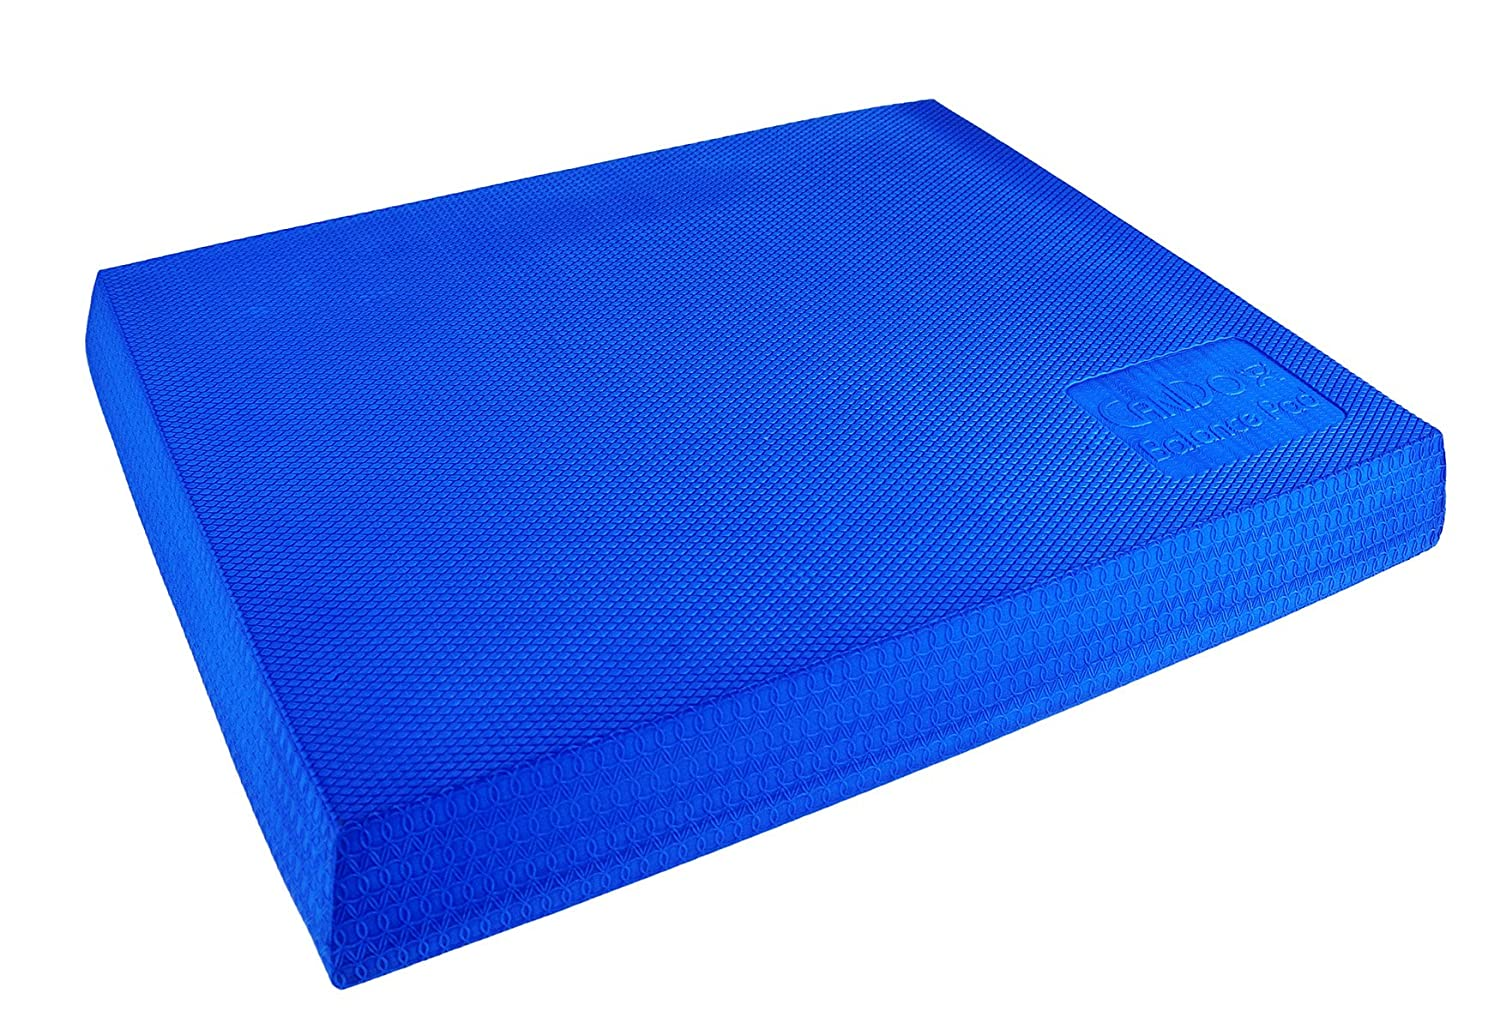 CanDo Balance Pad, 16 x 20 x 2.5, Blue Fabrication Enterprises 32-1500B FAB-32-1500B